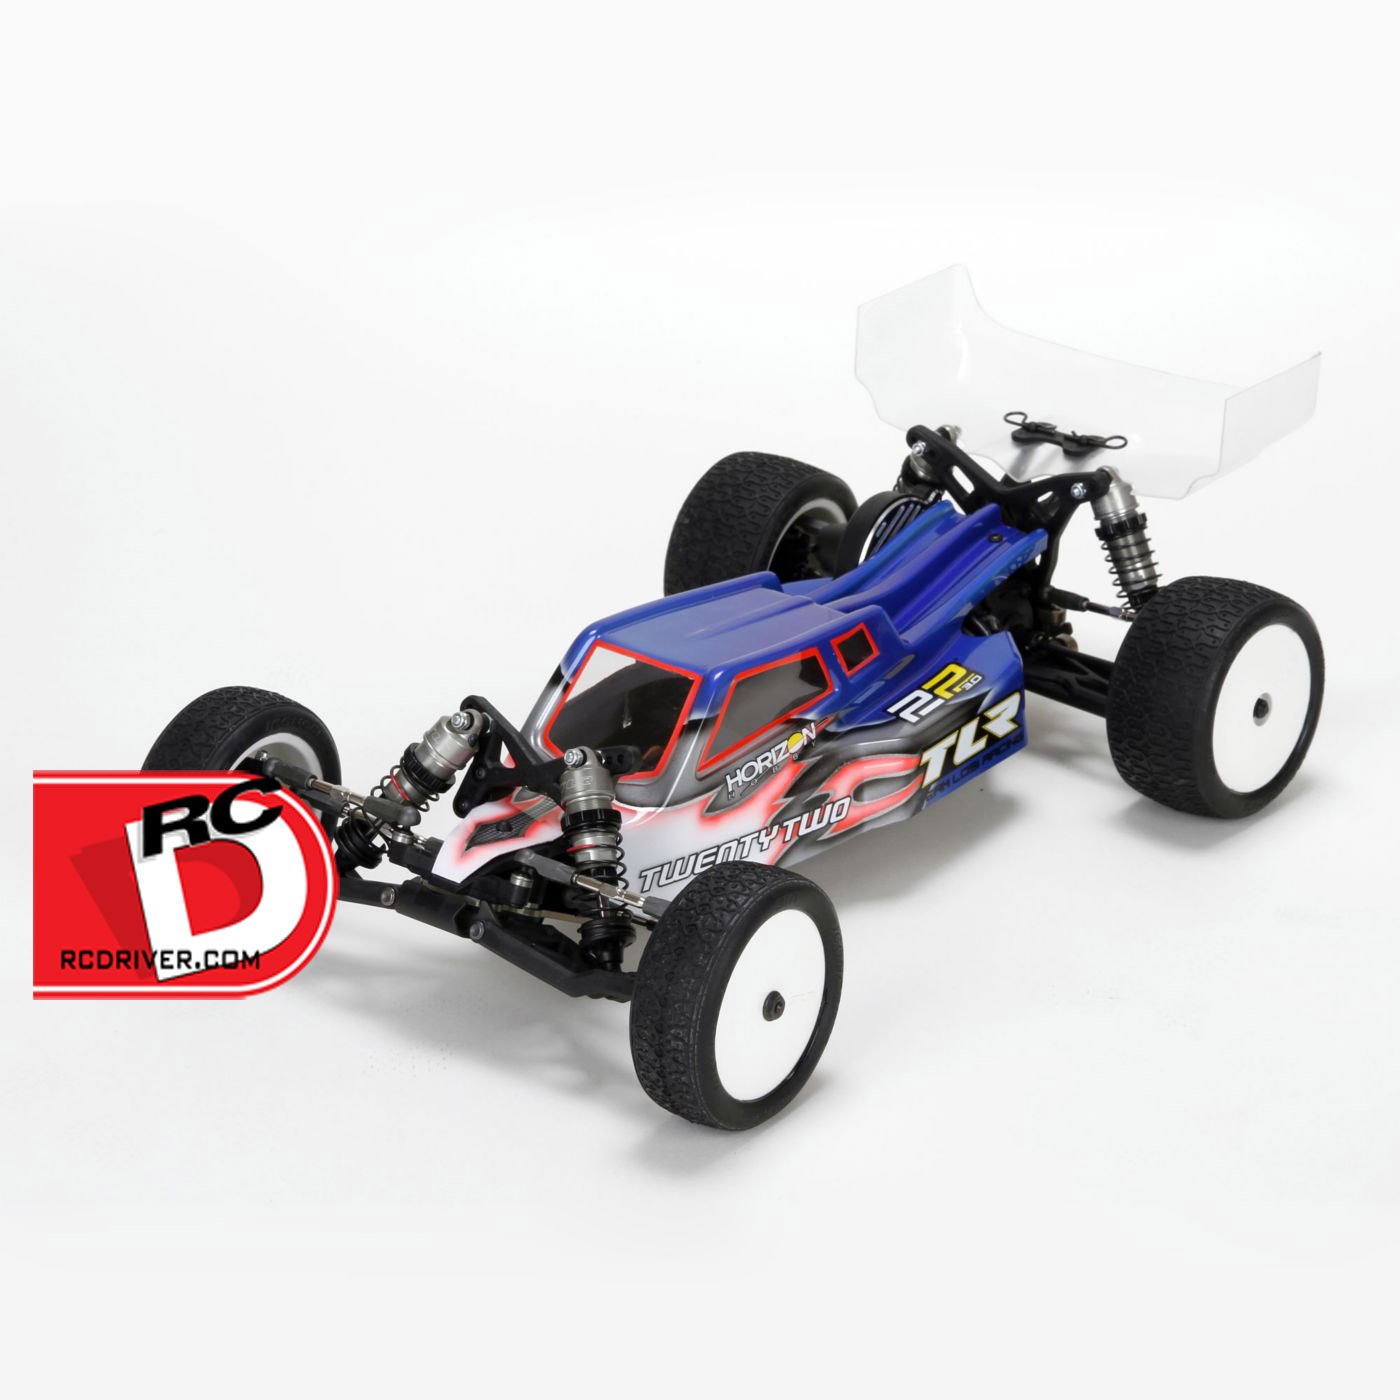 TLR 22 3.0 Mid Motor 2WD Buggy